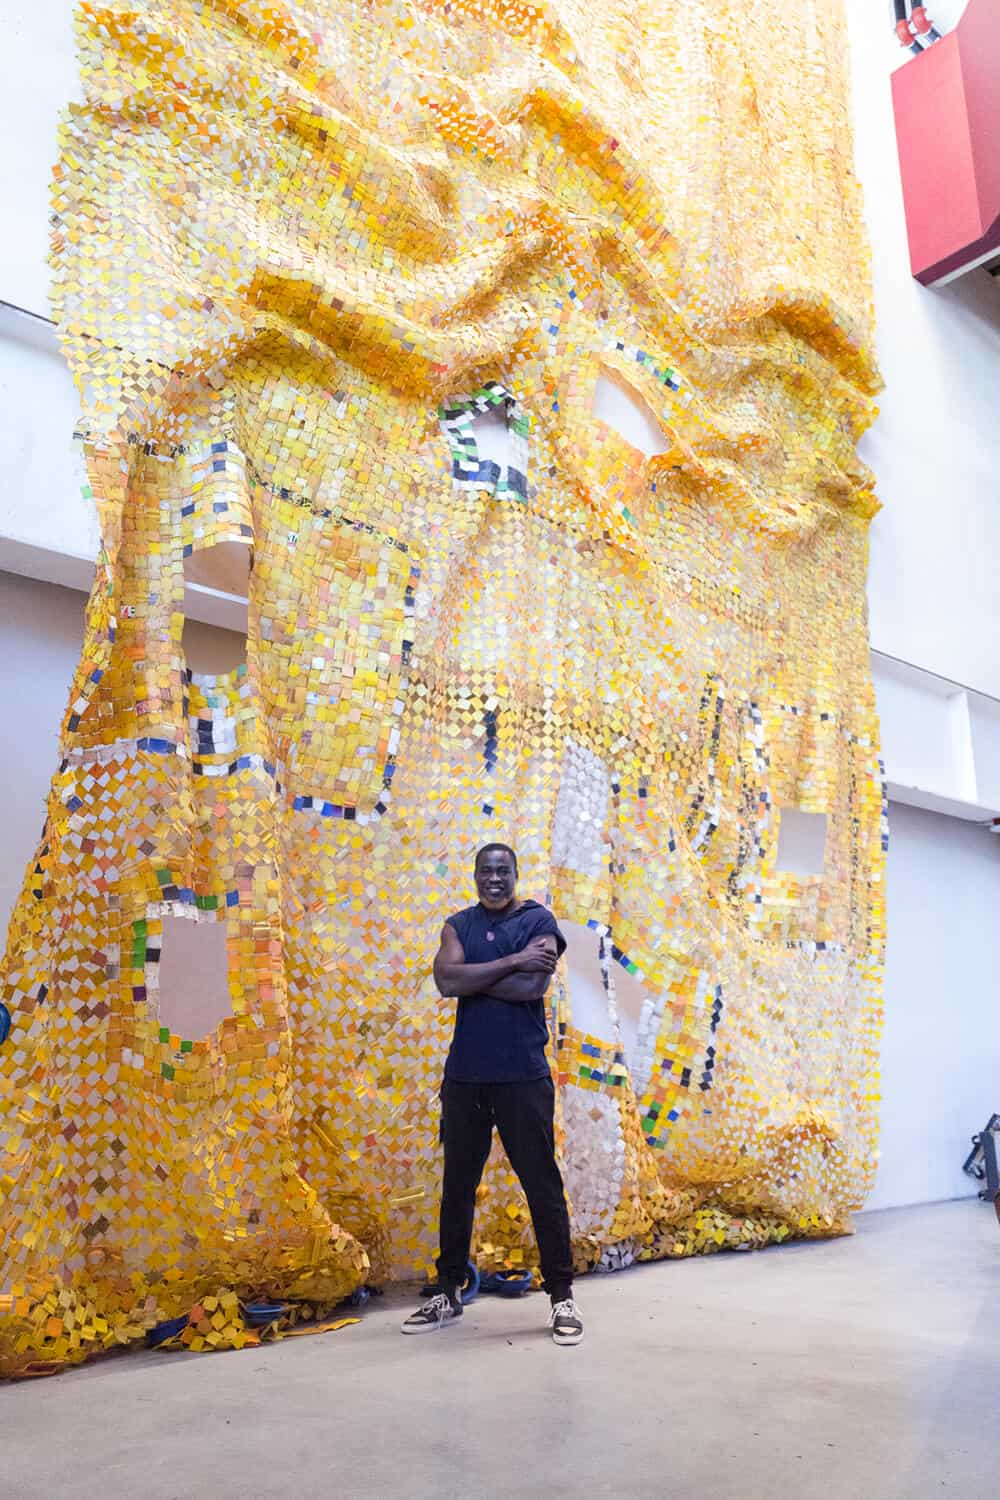 Serge Attukwei Clottey installing his work Kusum Gboo Ga (Tradition never dies) at the Facebook headquarters, 2018.